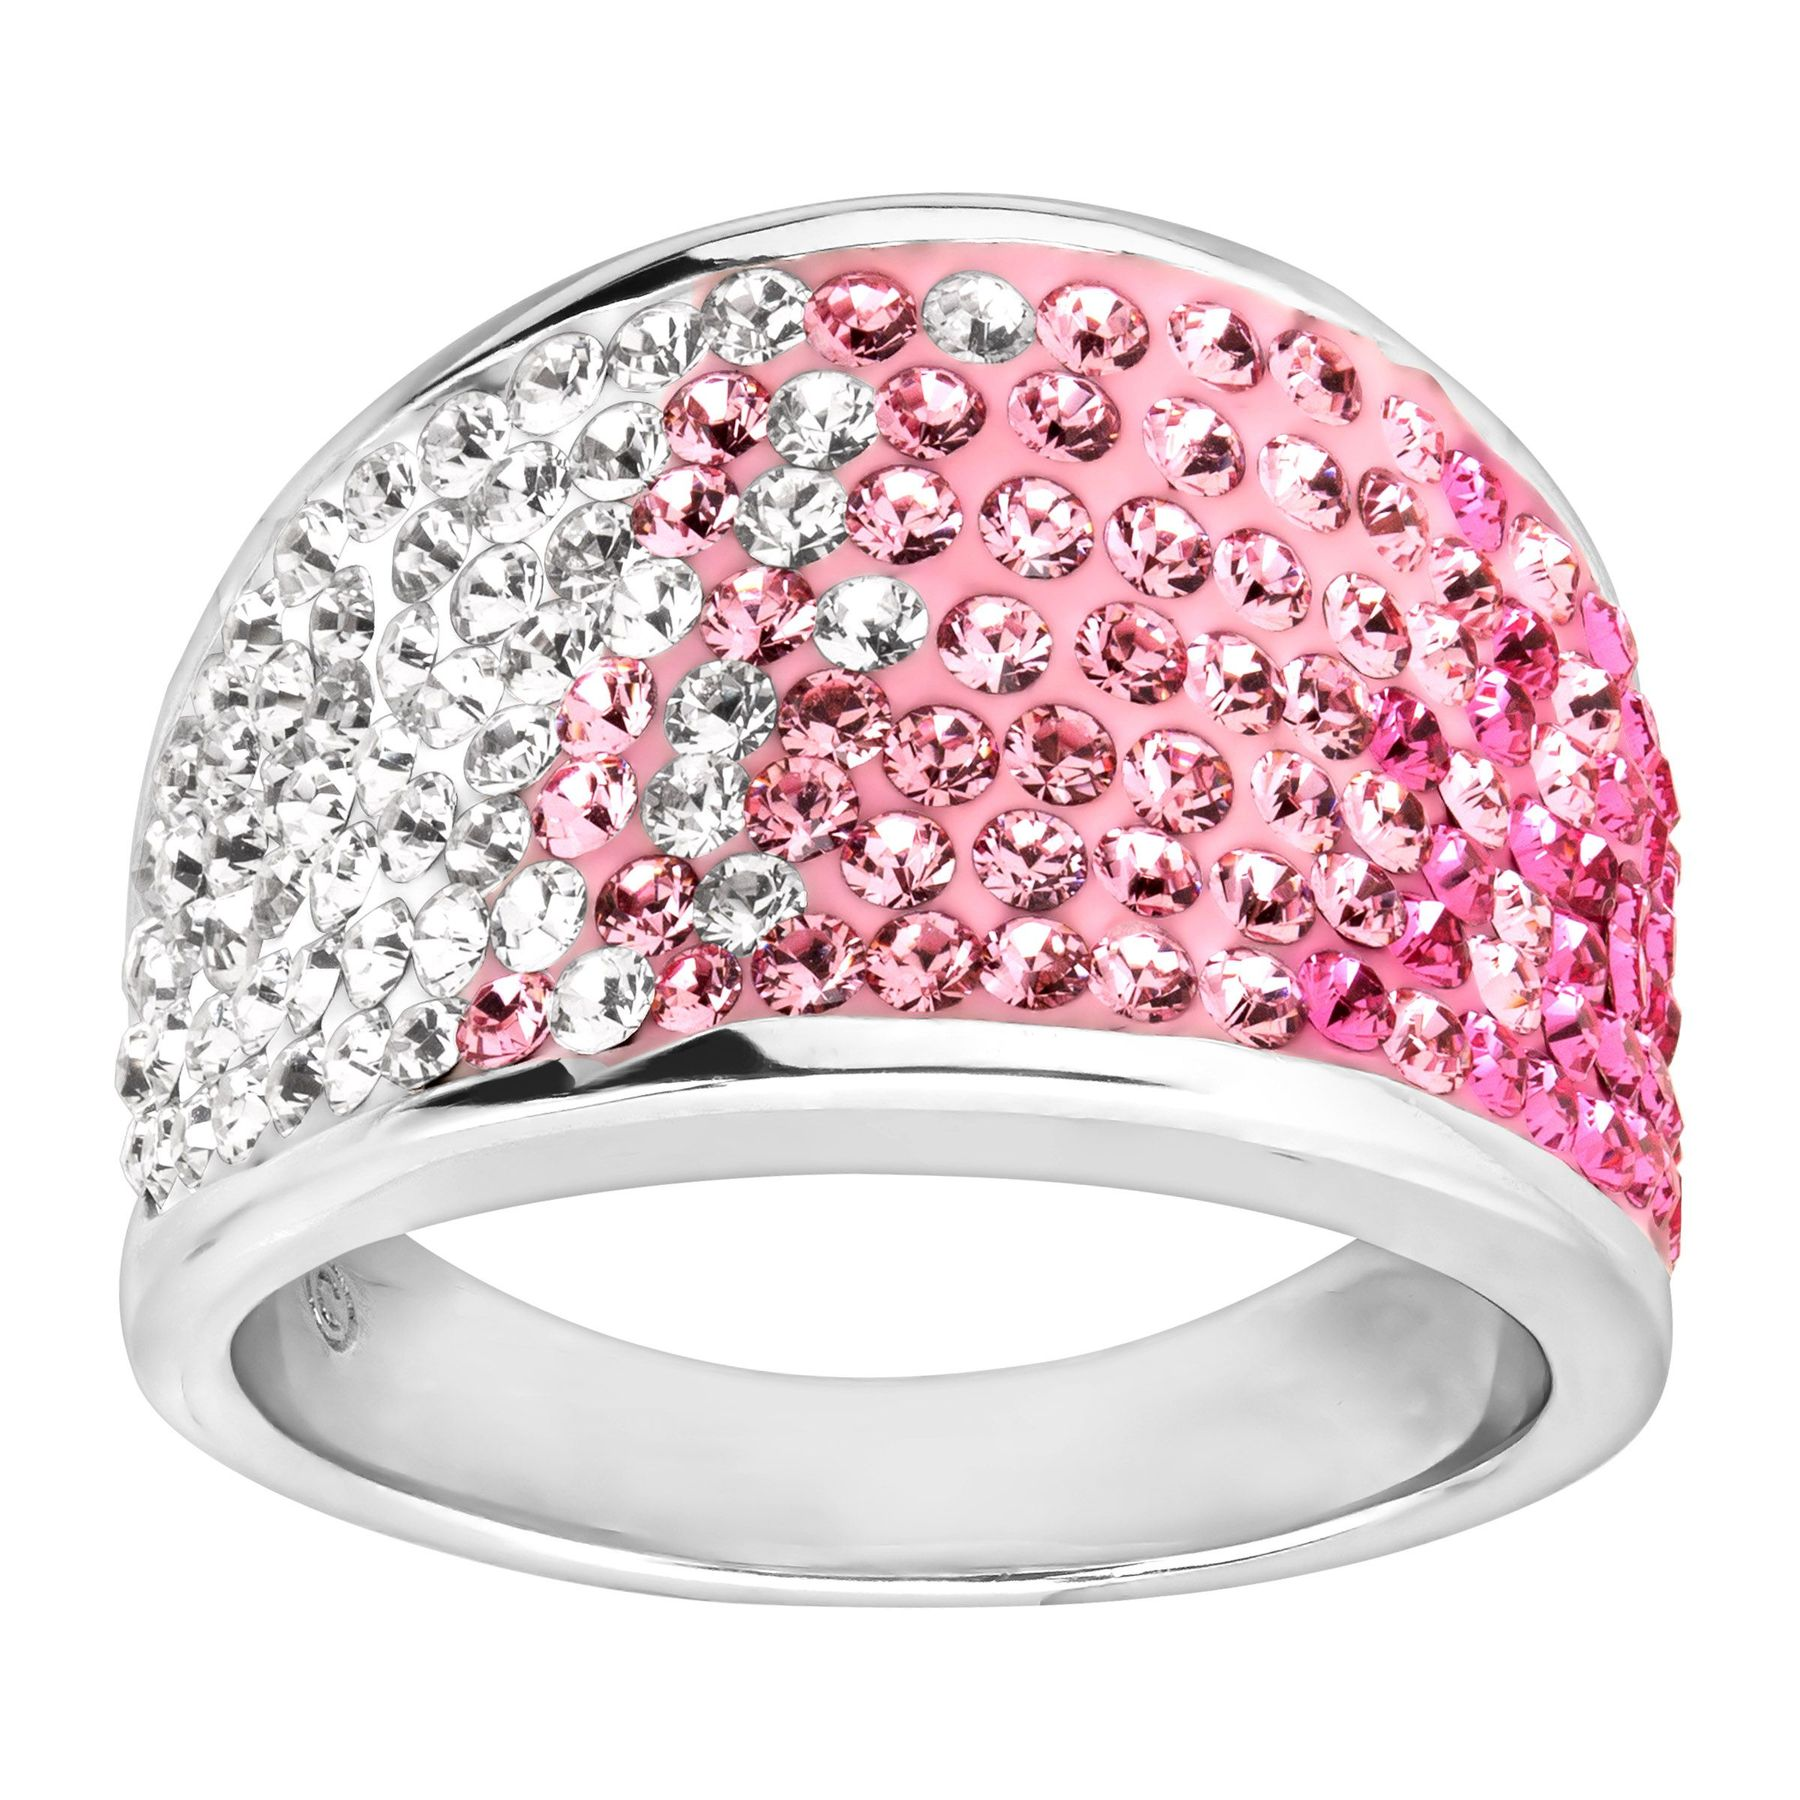 f0f6b02ae5941 Pink Gradient Dome Ring with Swarovski Crystals in Sterling Silver